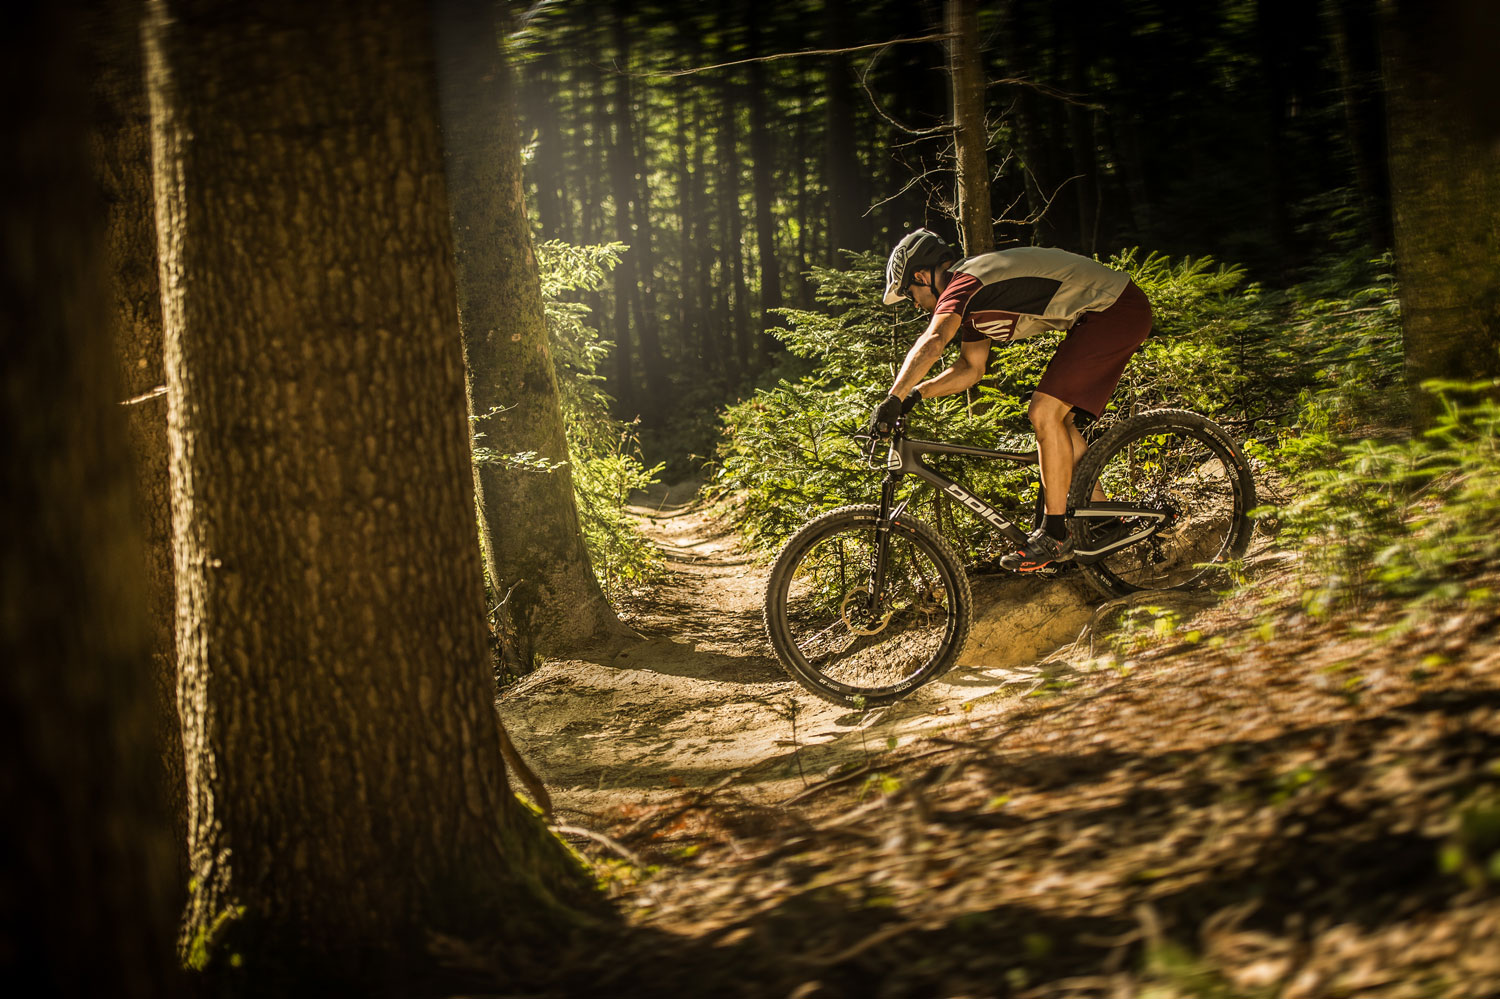 Suplest mountainbike skor